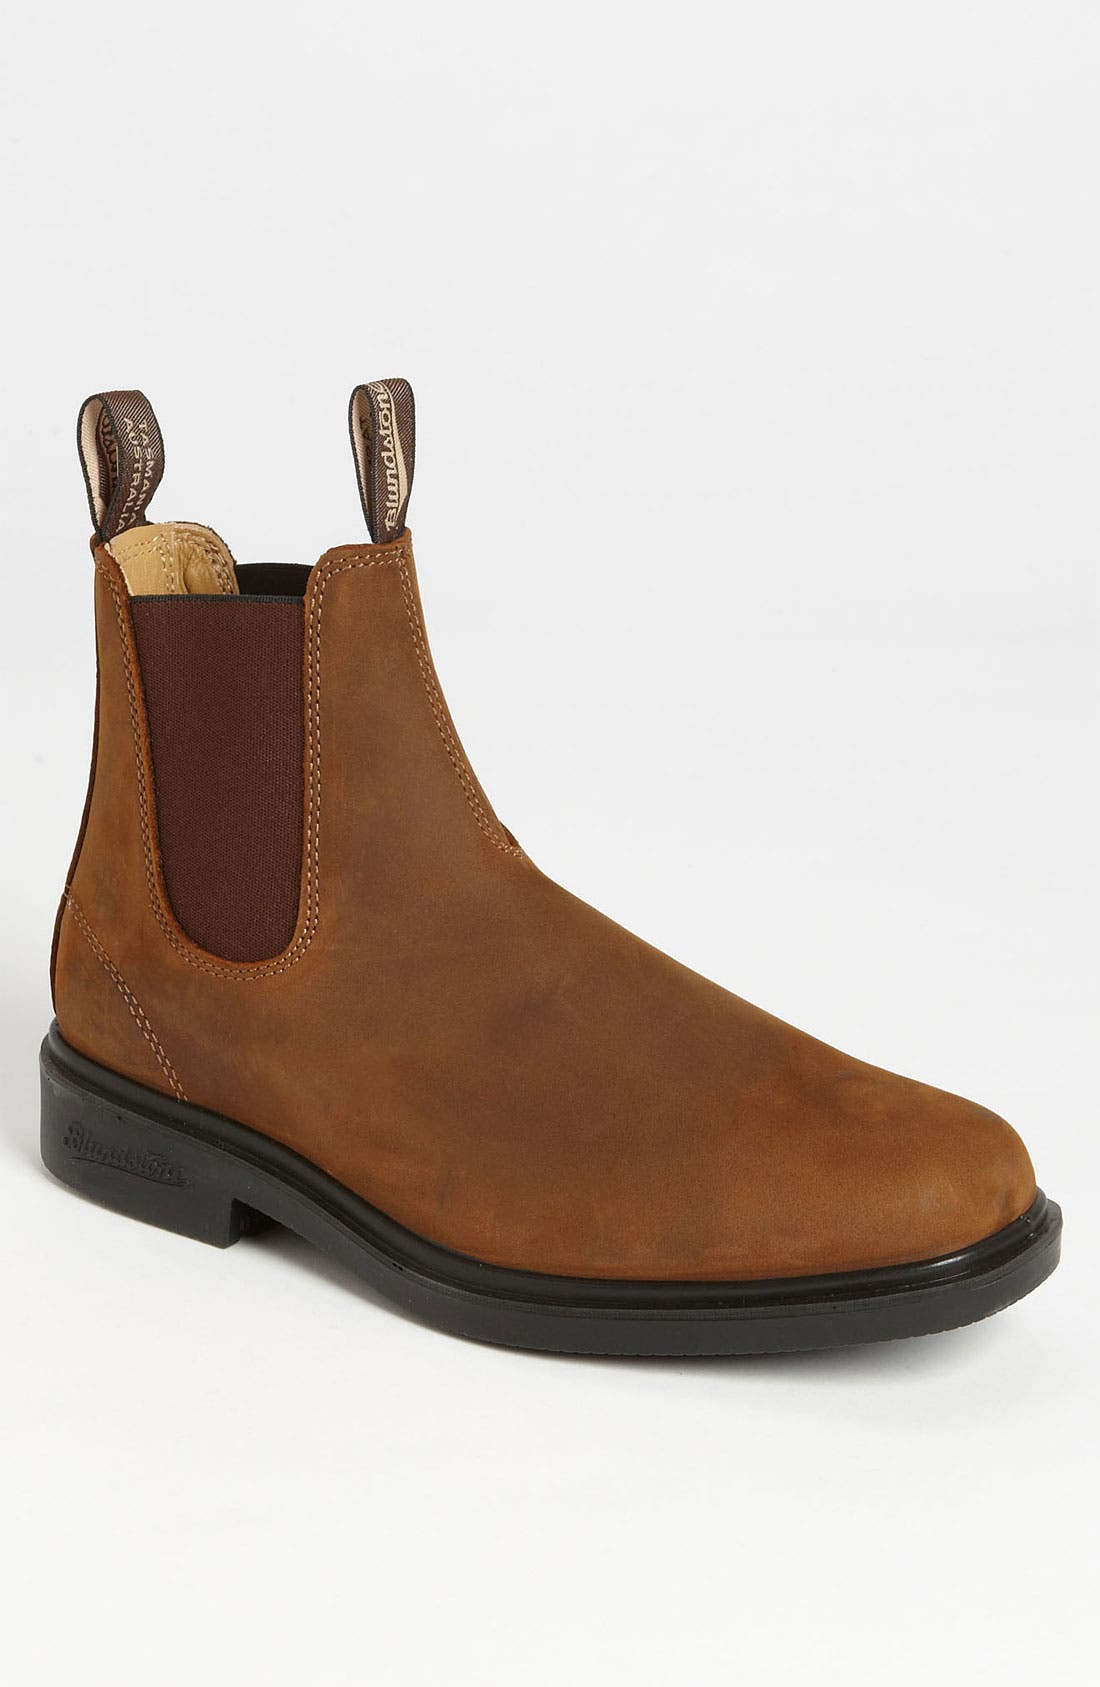 Main Image - Blundstone Footwear Chelsea Boot (Online Only)